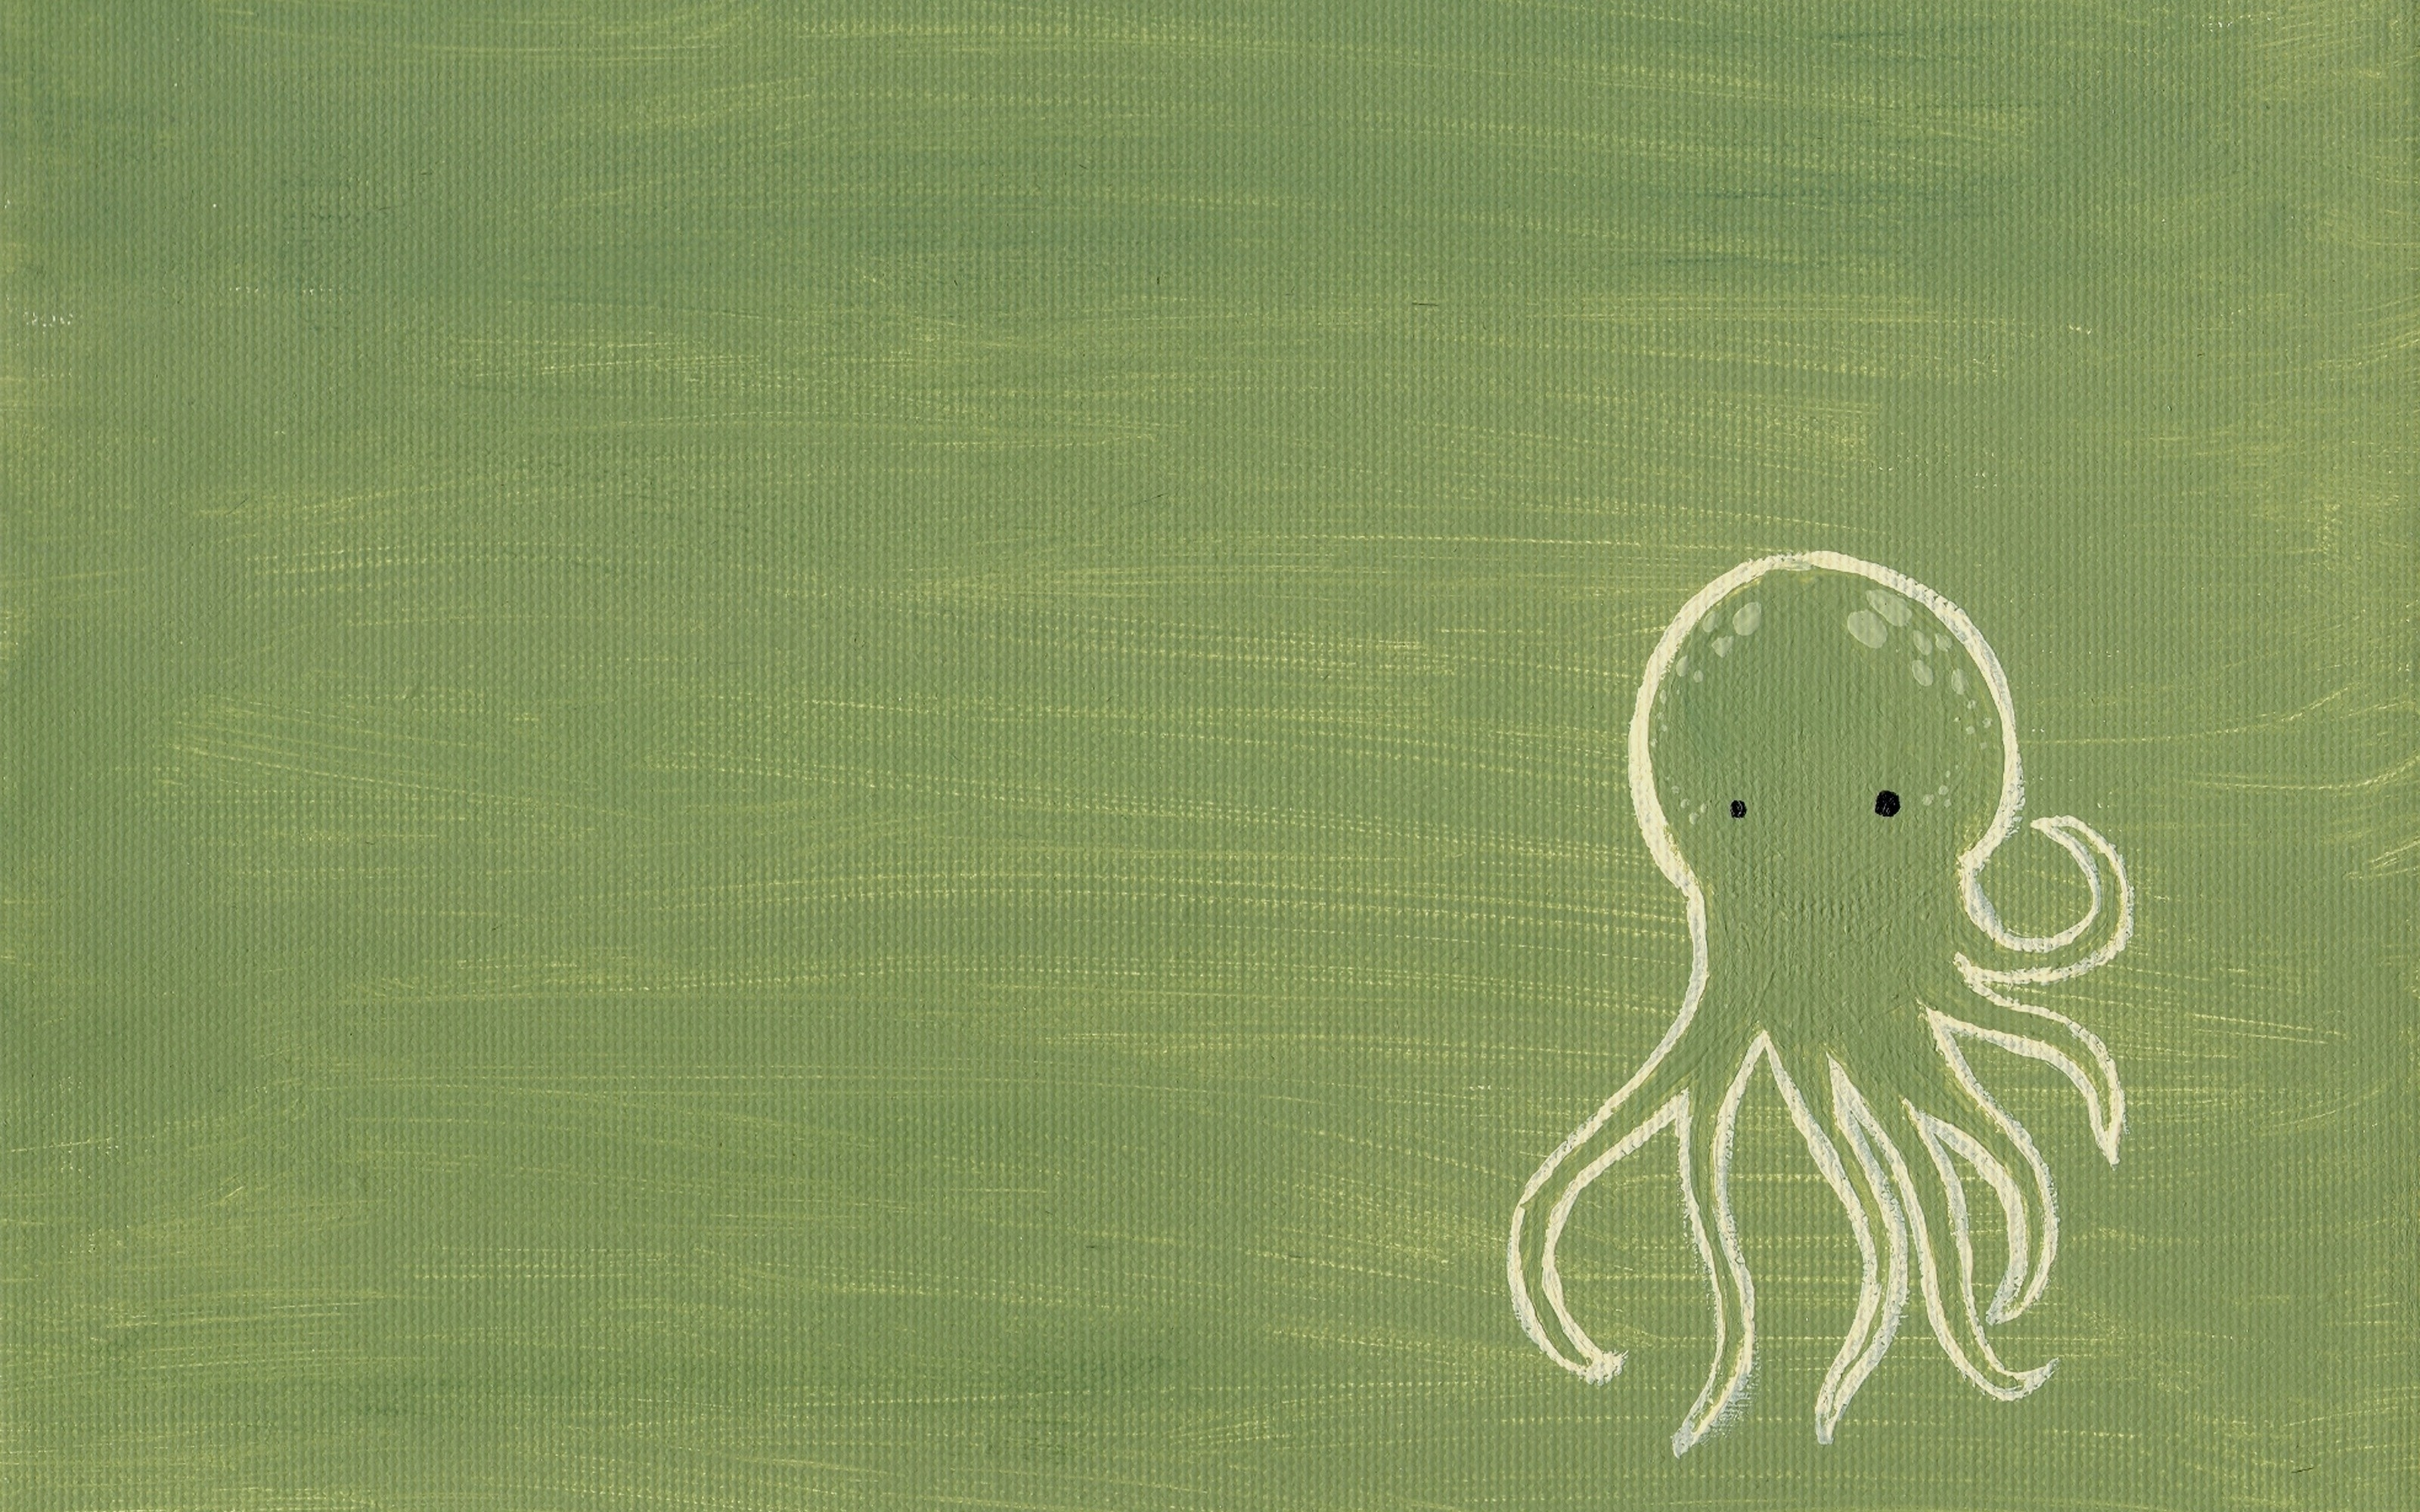 149559 download wallpaper Textures, Texture, Octopus, Picture, Drawing screensavers and pictures for free